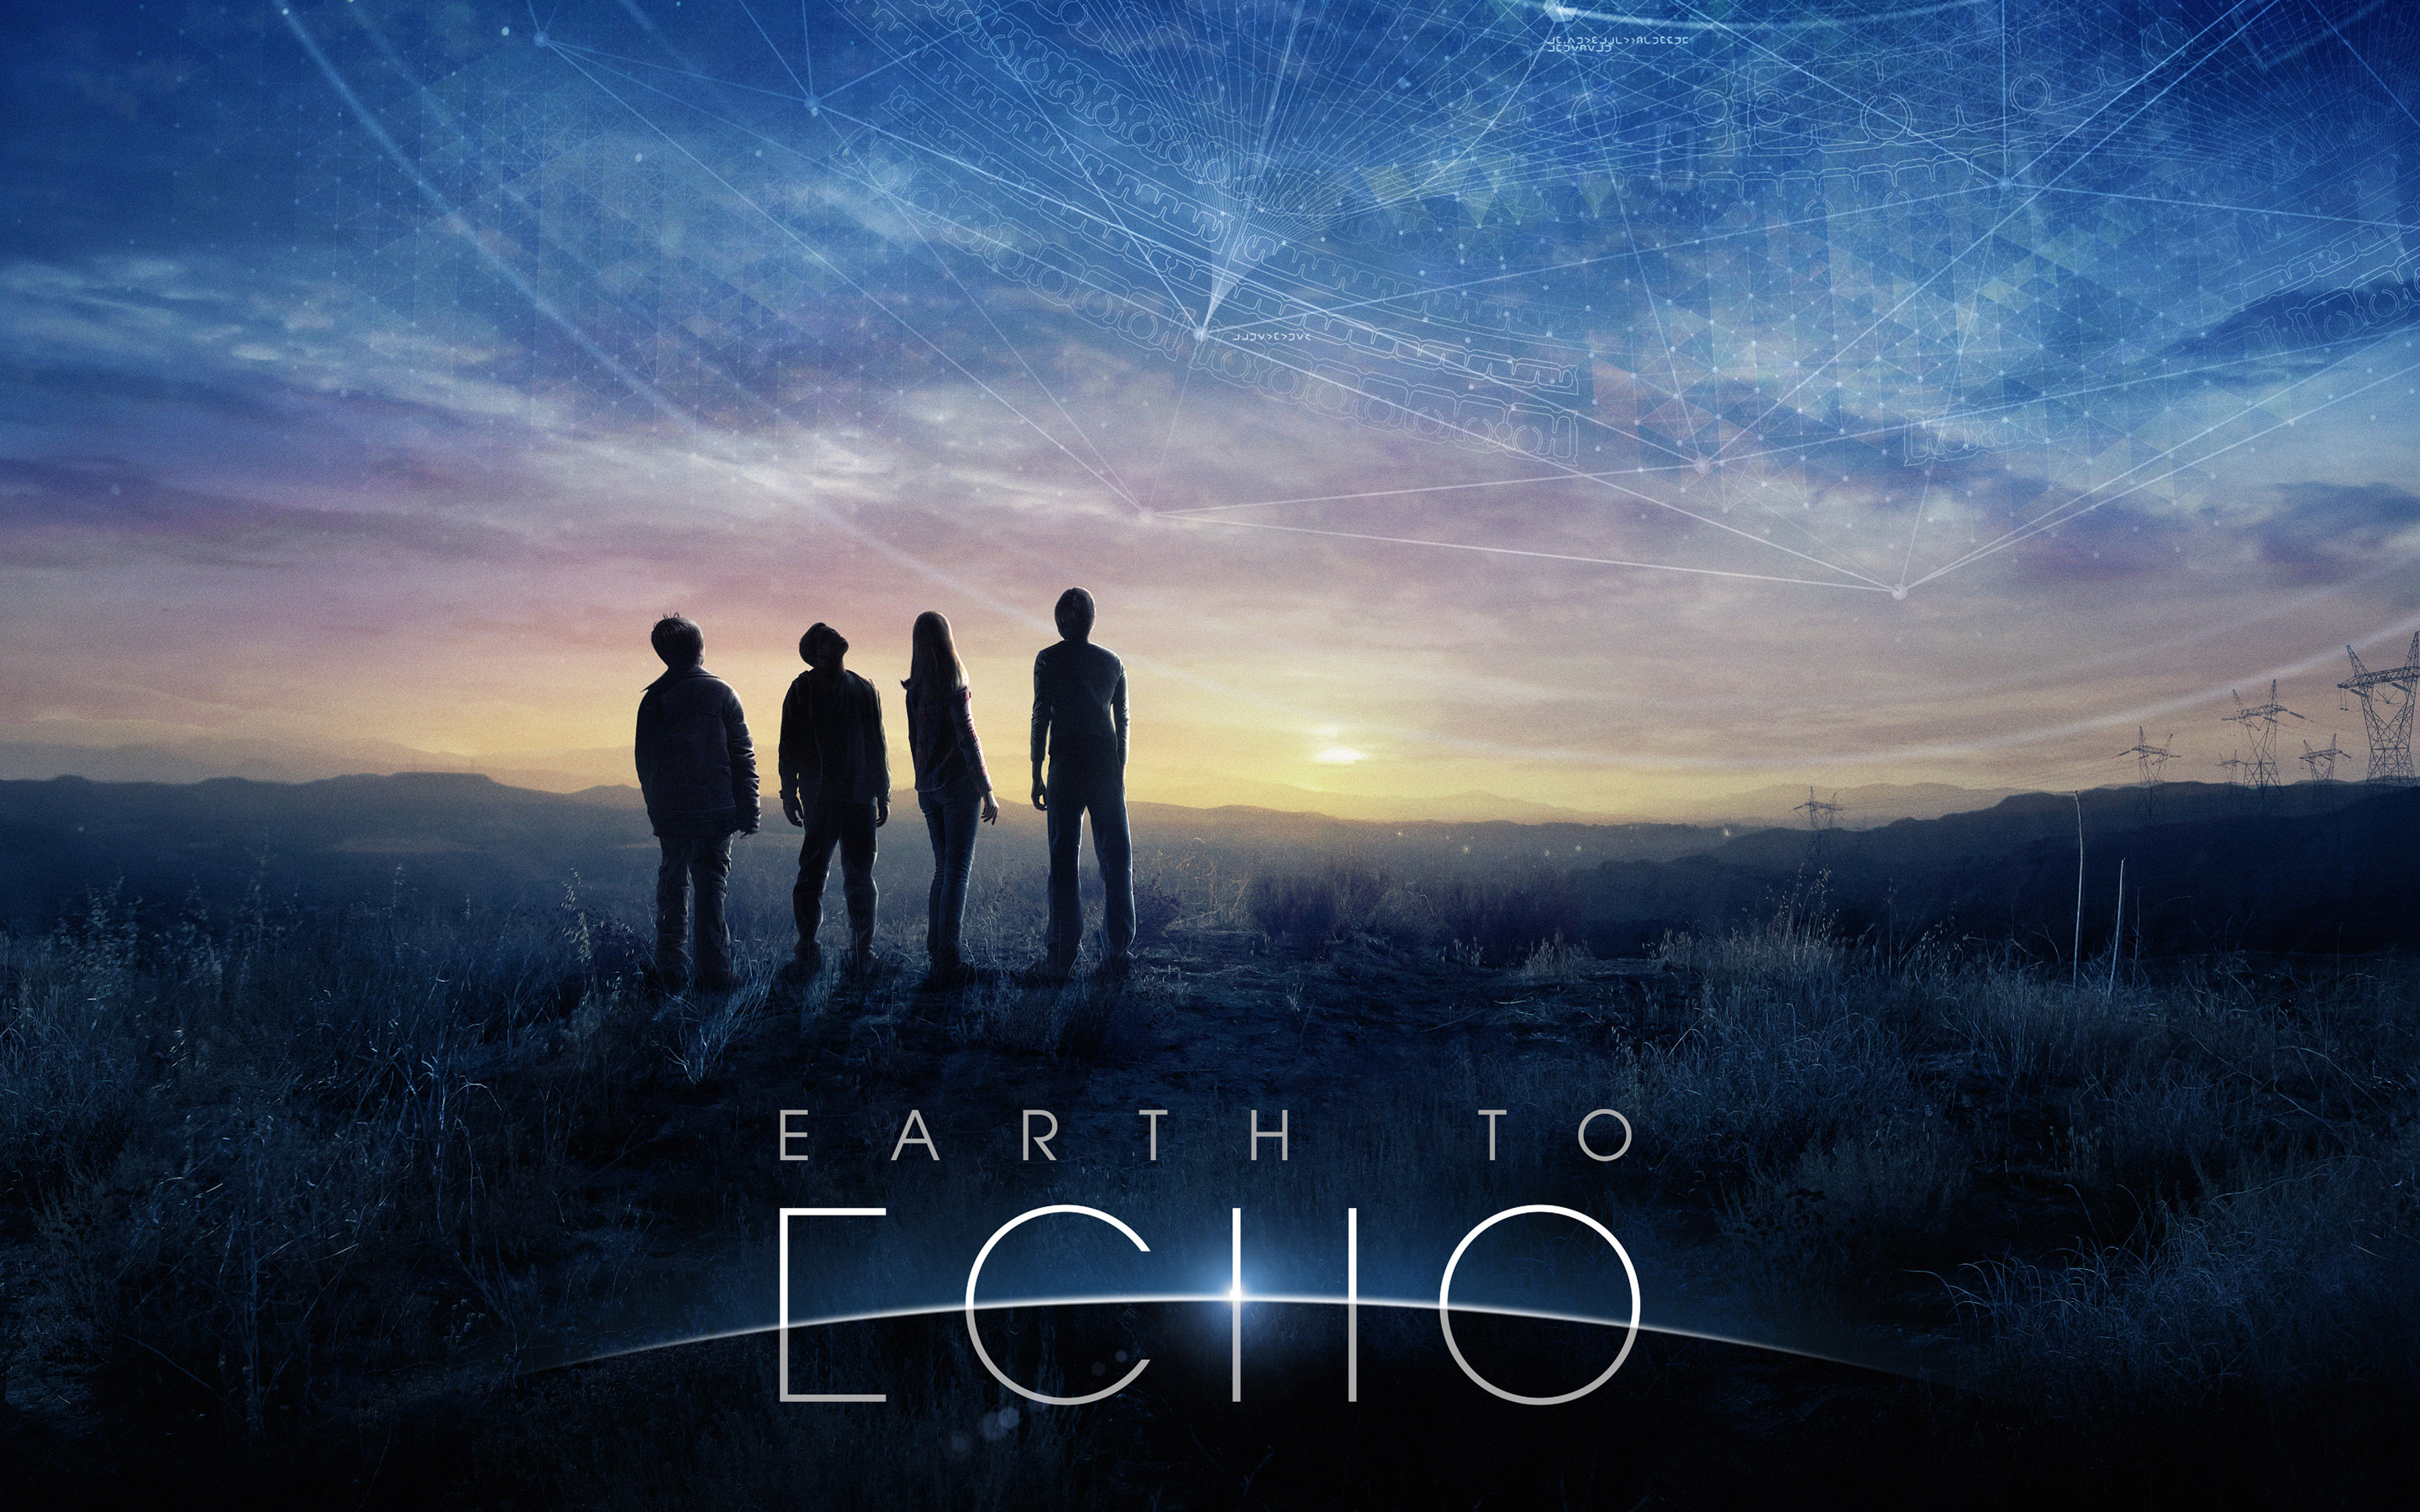 ... of 2013 Director Dave Green contacted BEMO, a design oriented boutique VFX studio in Los Angeles, about contributing to the feature film Earth to Echo.